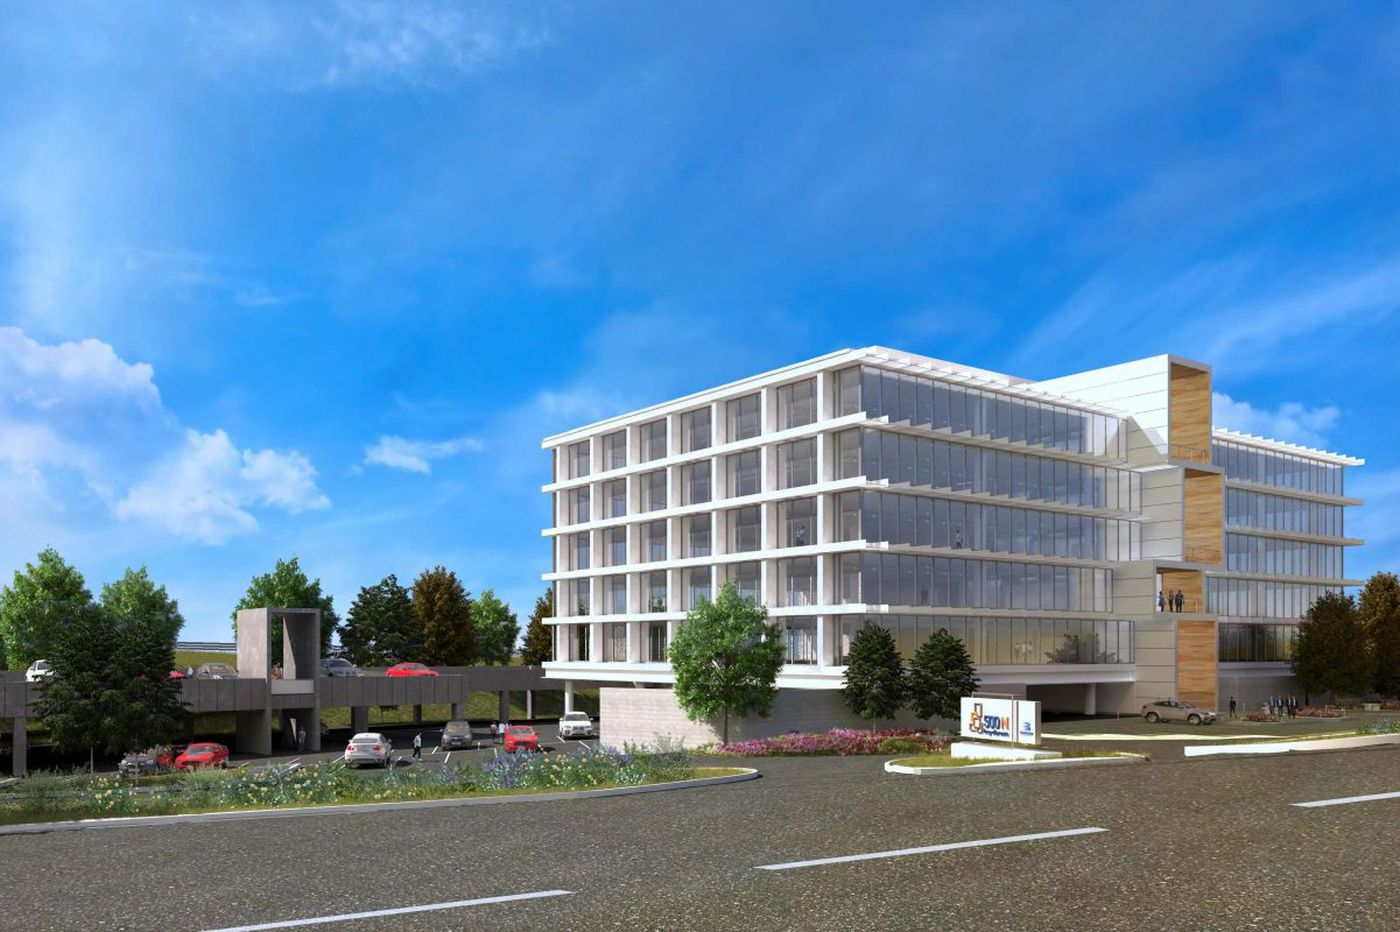 Expanding biosciences firm CSL to fully occupy King of Prussia office building after redevelopment